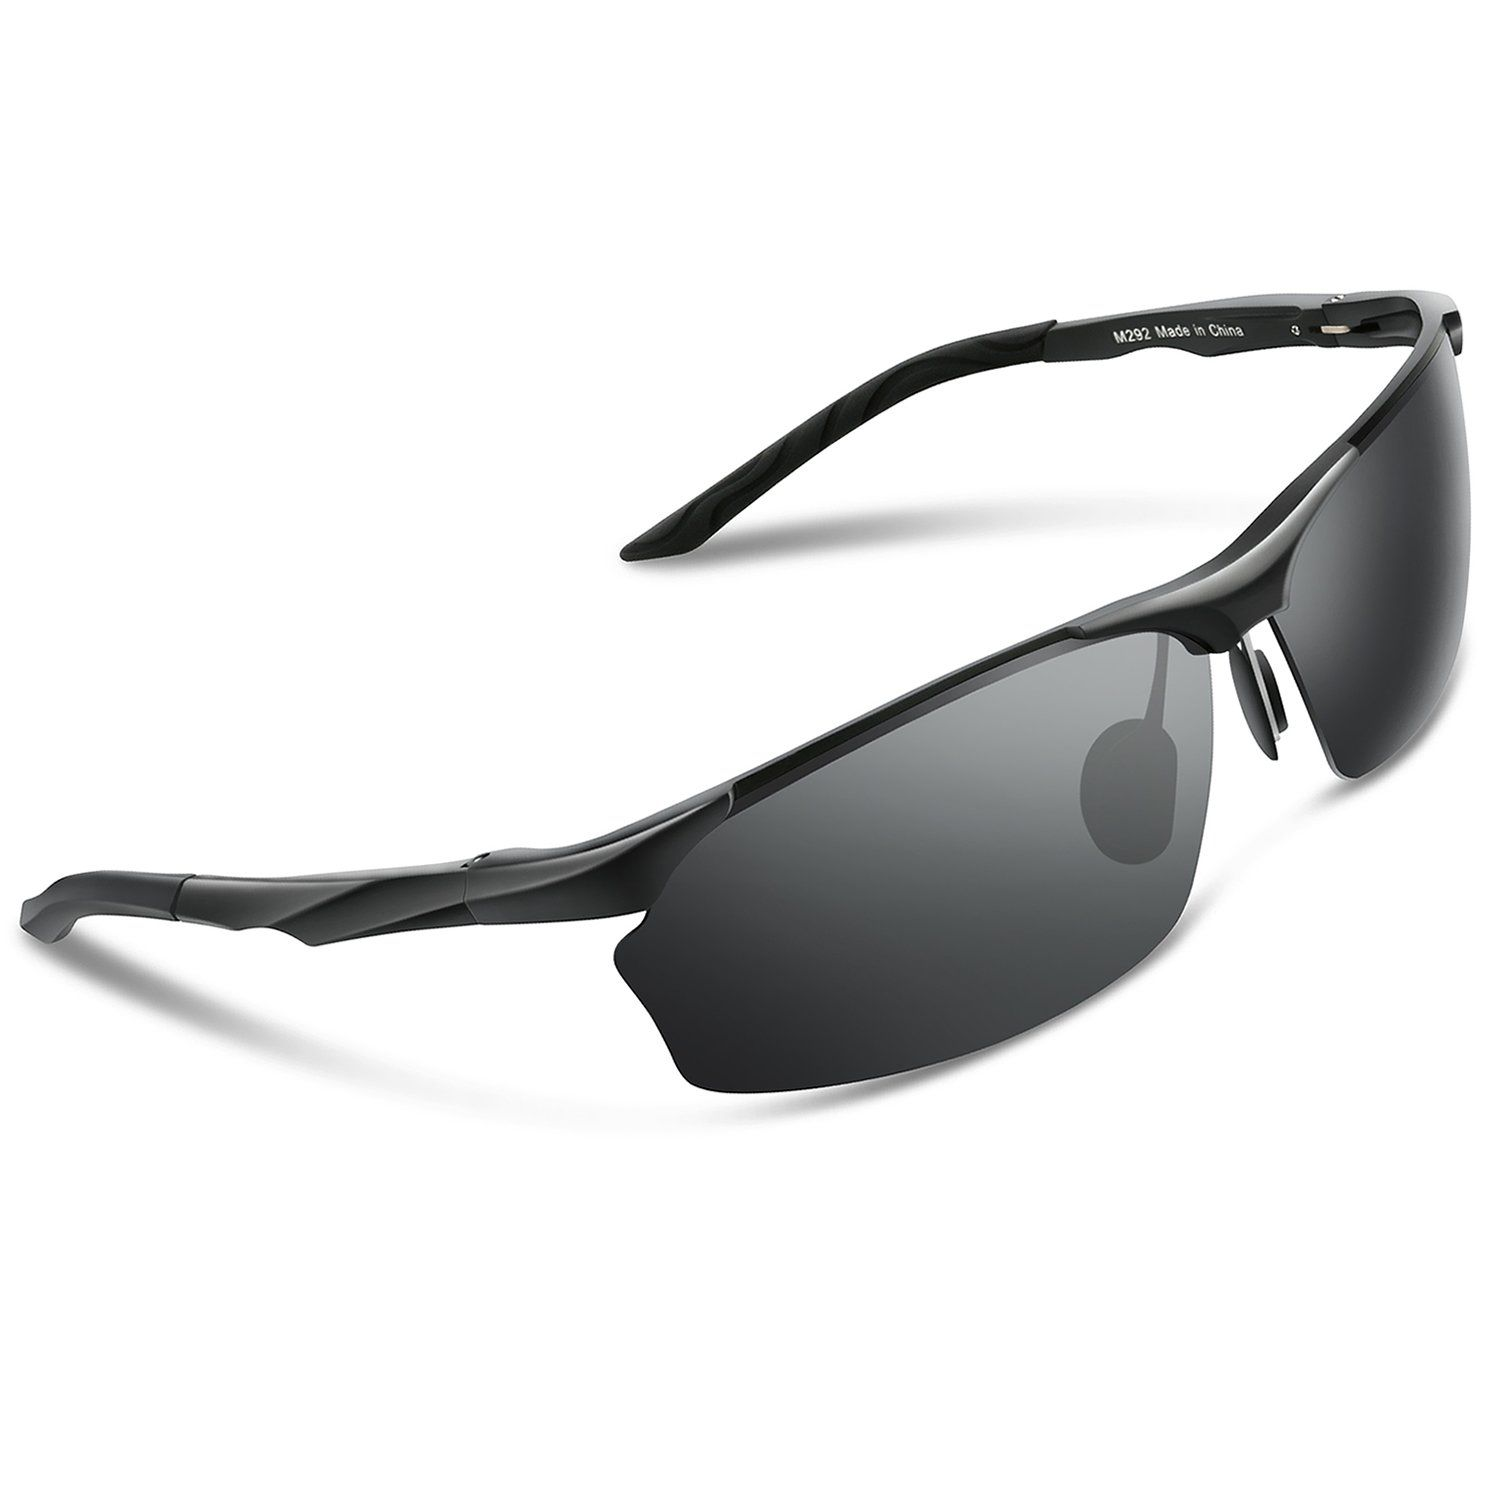 2b276e024fa Torege Men s Sports Style Polarized Sunglasses For Cycling Running Fishing  Driving Golf Unbreakable Al-Mg Metal Frame Glasses M292 (Black Grey lens).